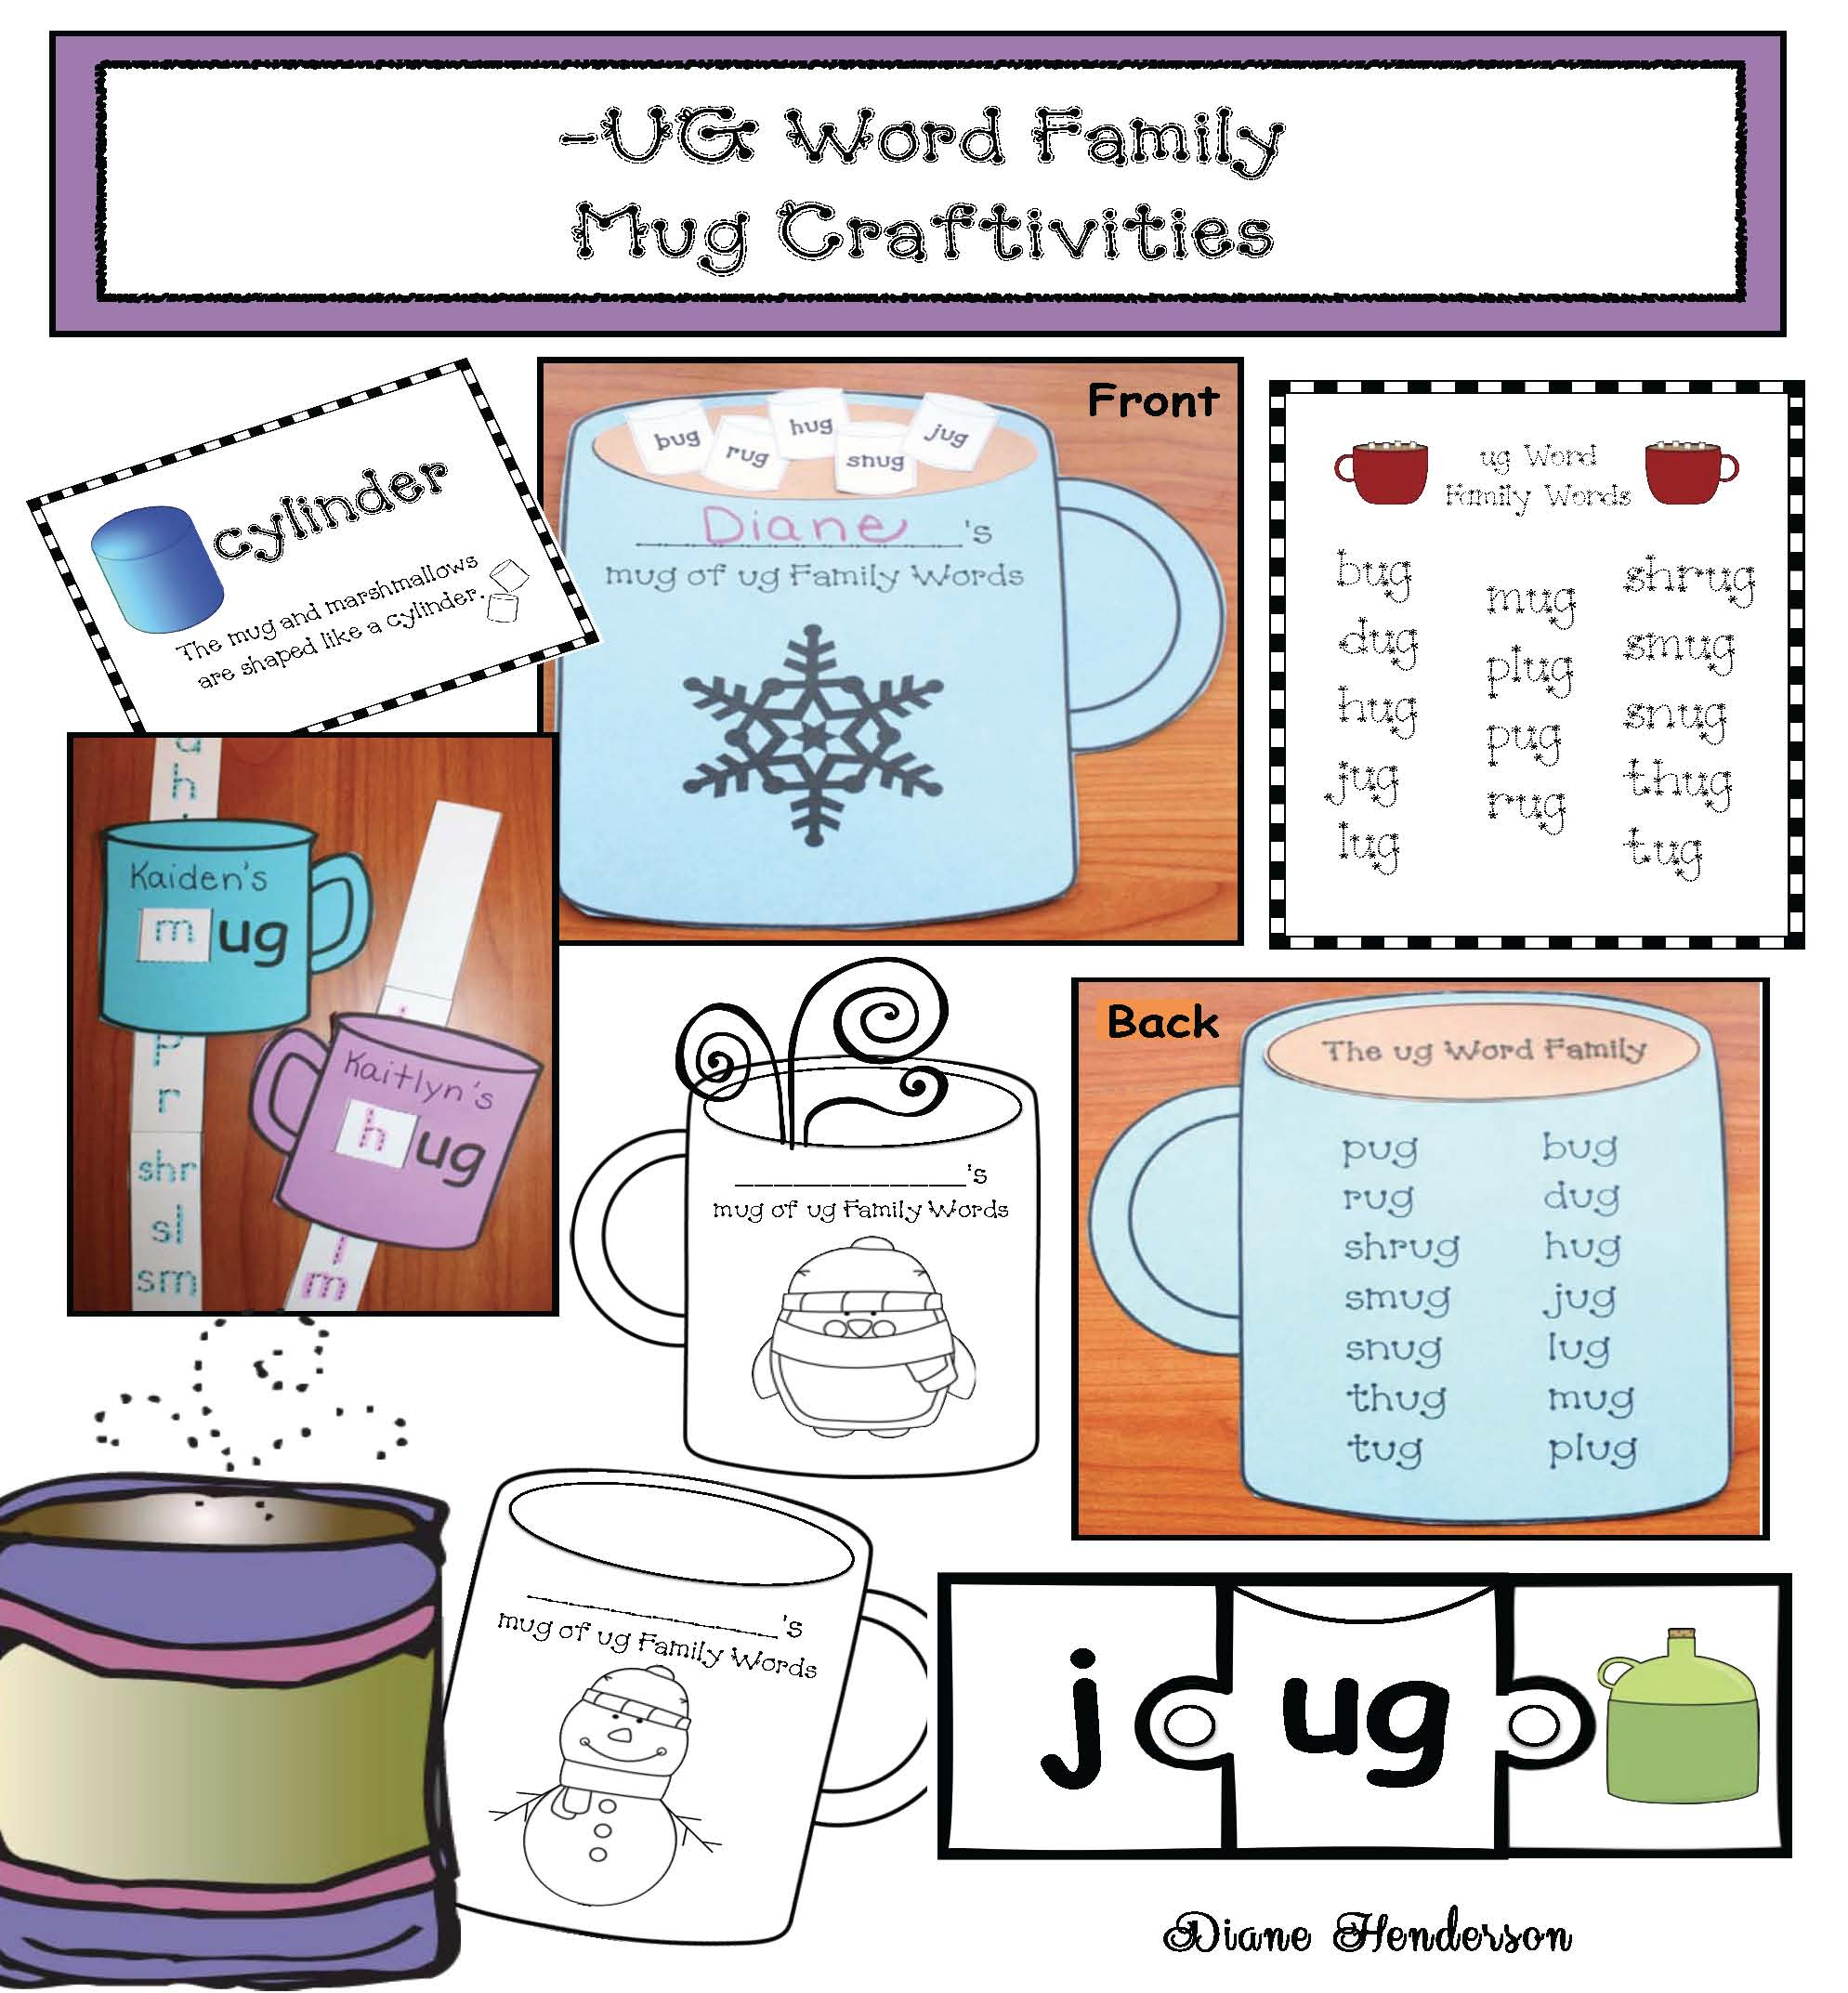 mitten activities, magic e activities, silent e activities, mitten games, mitten centers, winter word work, hot chocolate activities, ug word family, ug word activities